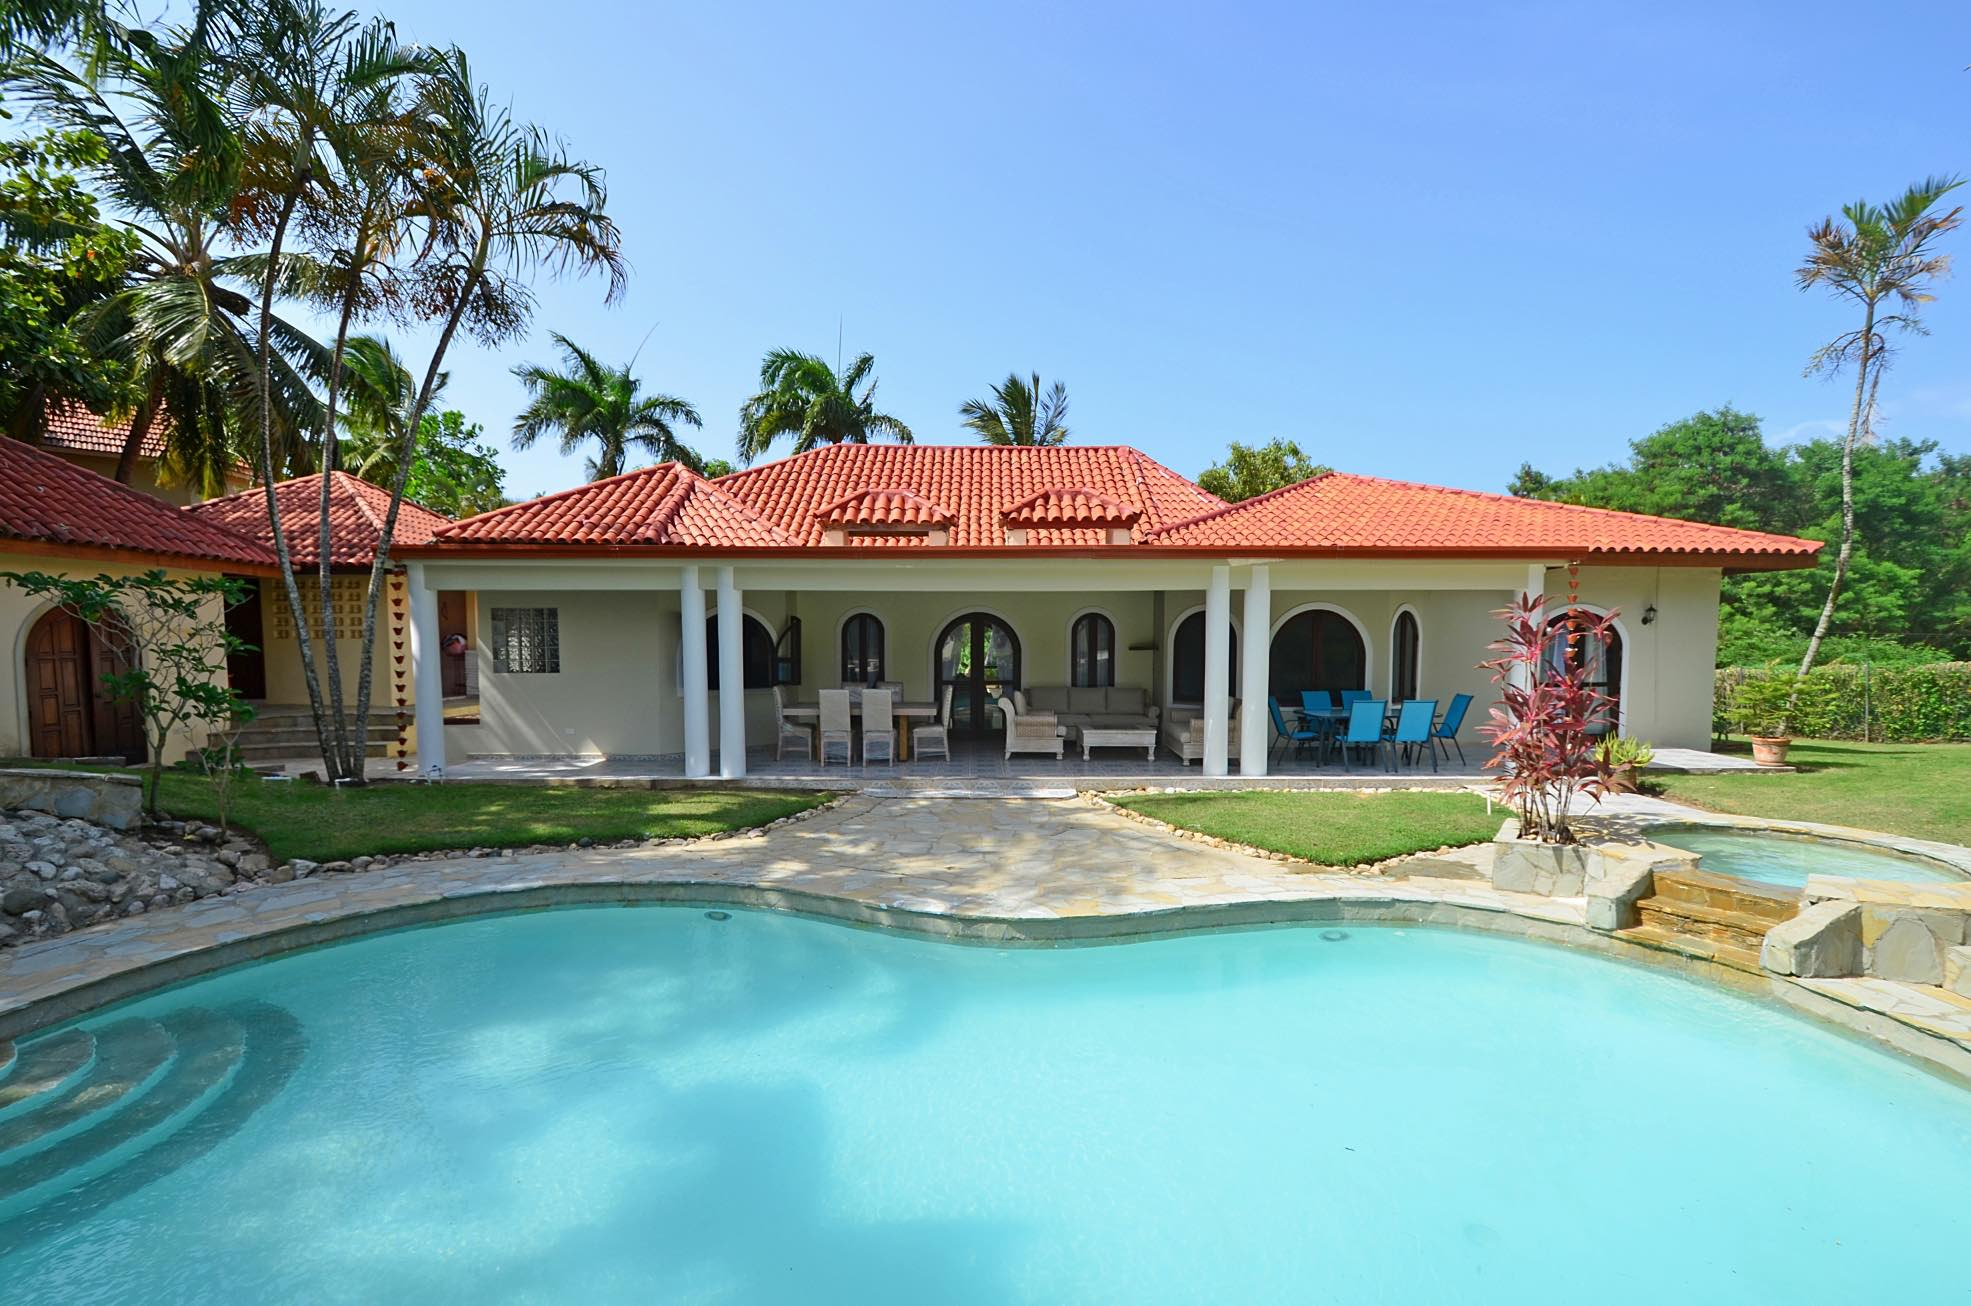 Guest Friendly Villa Rental in Sosua 7 Bedrooms